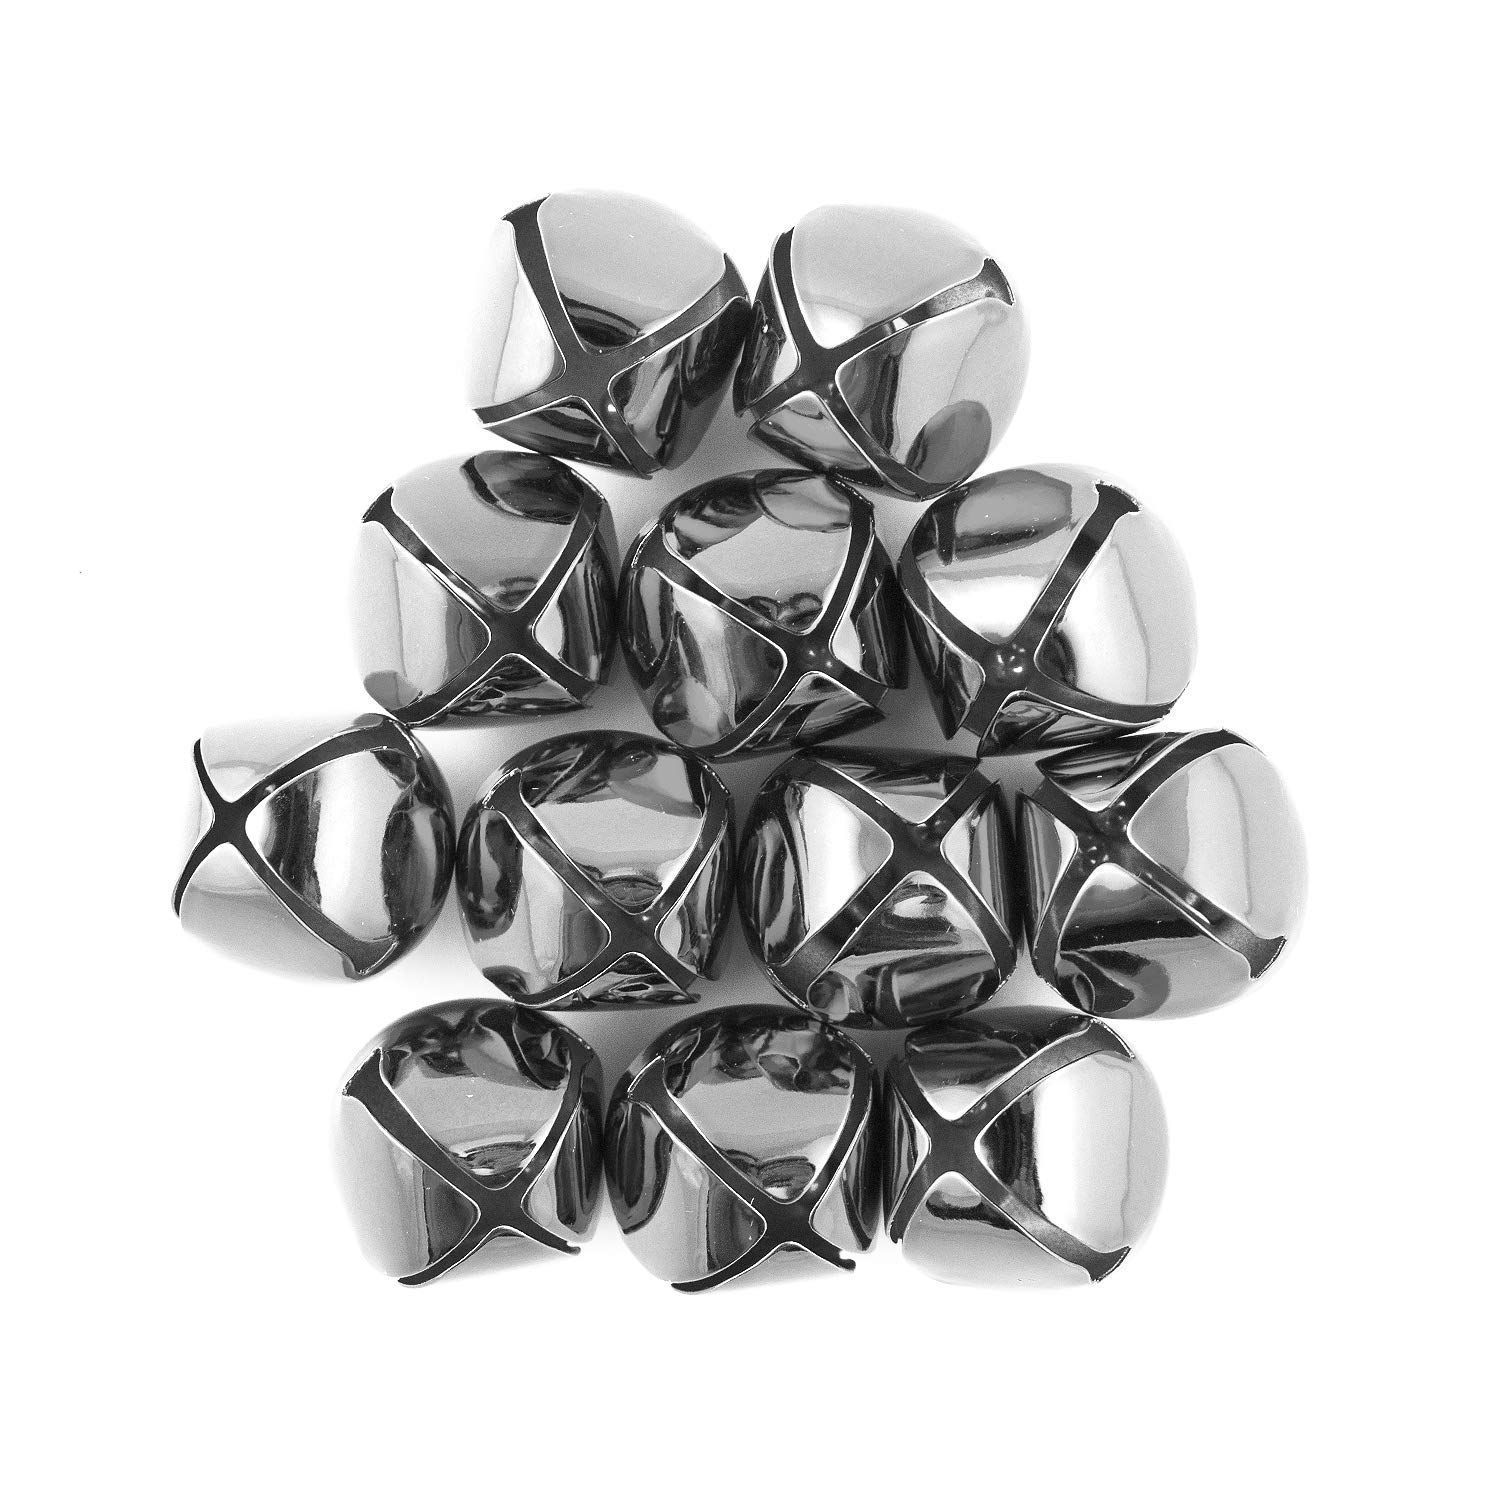 1 inch 25mm Silver Large Craft Jingle Bells Bulk Wholesale